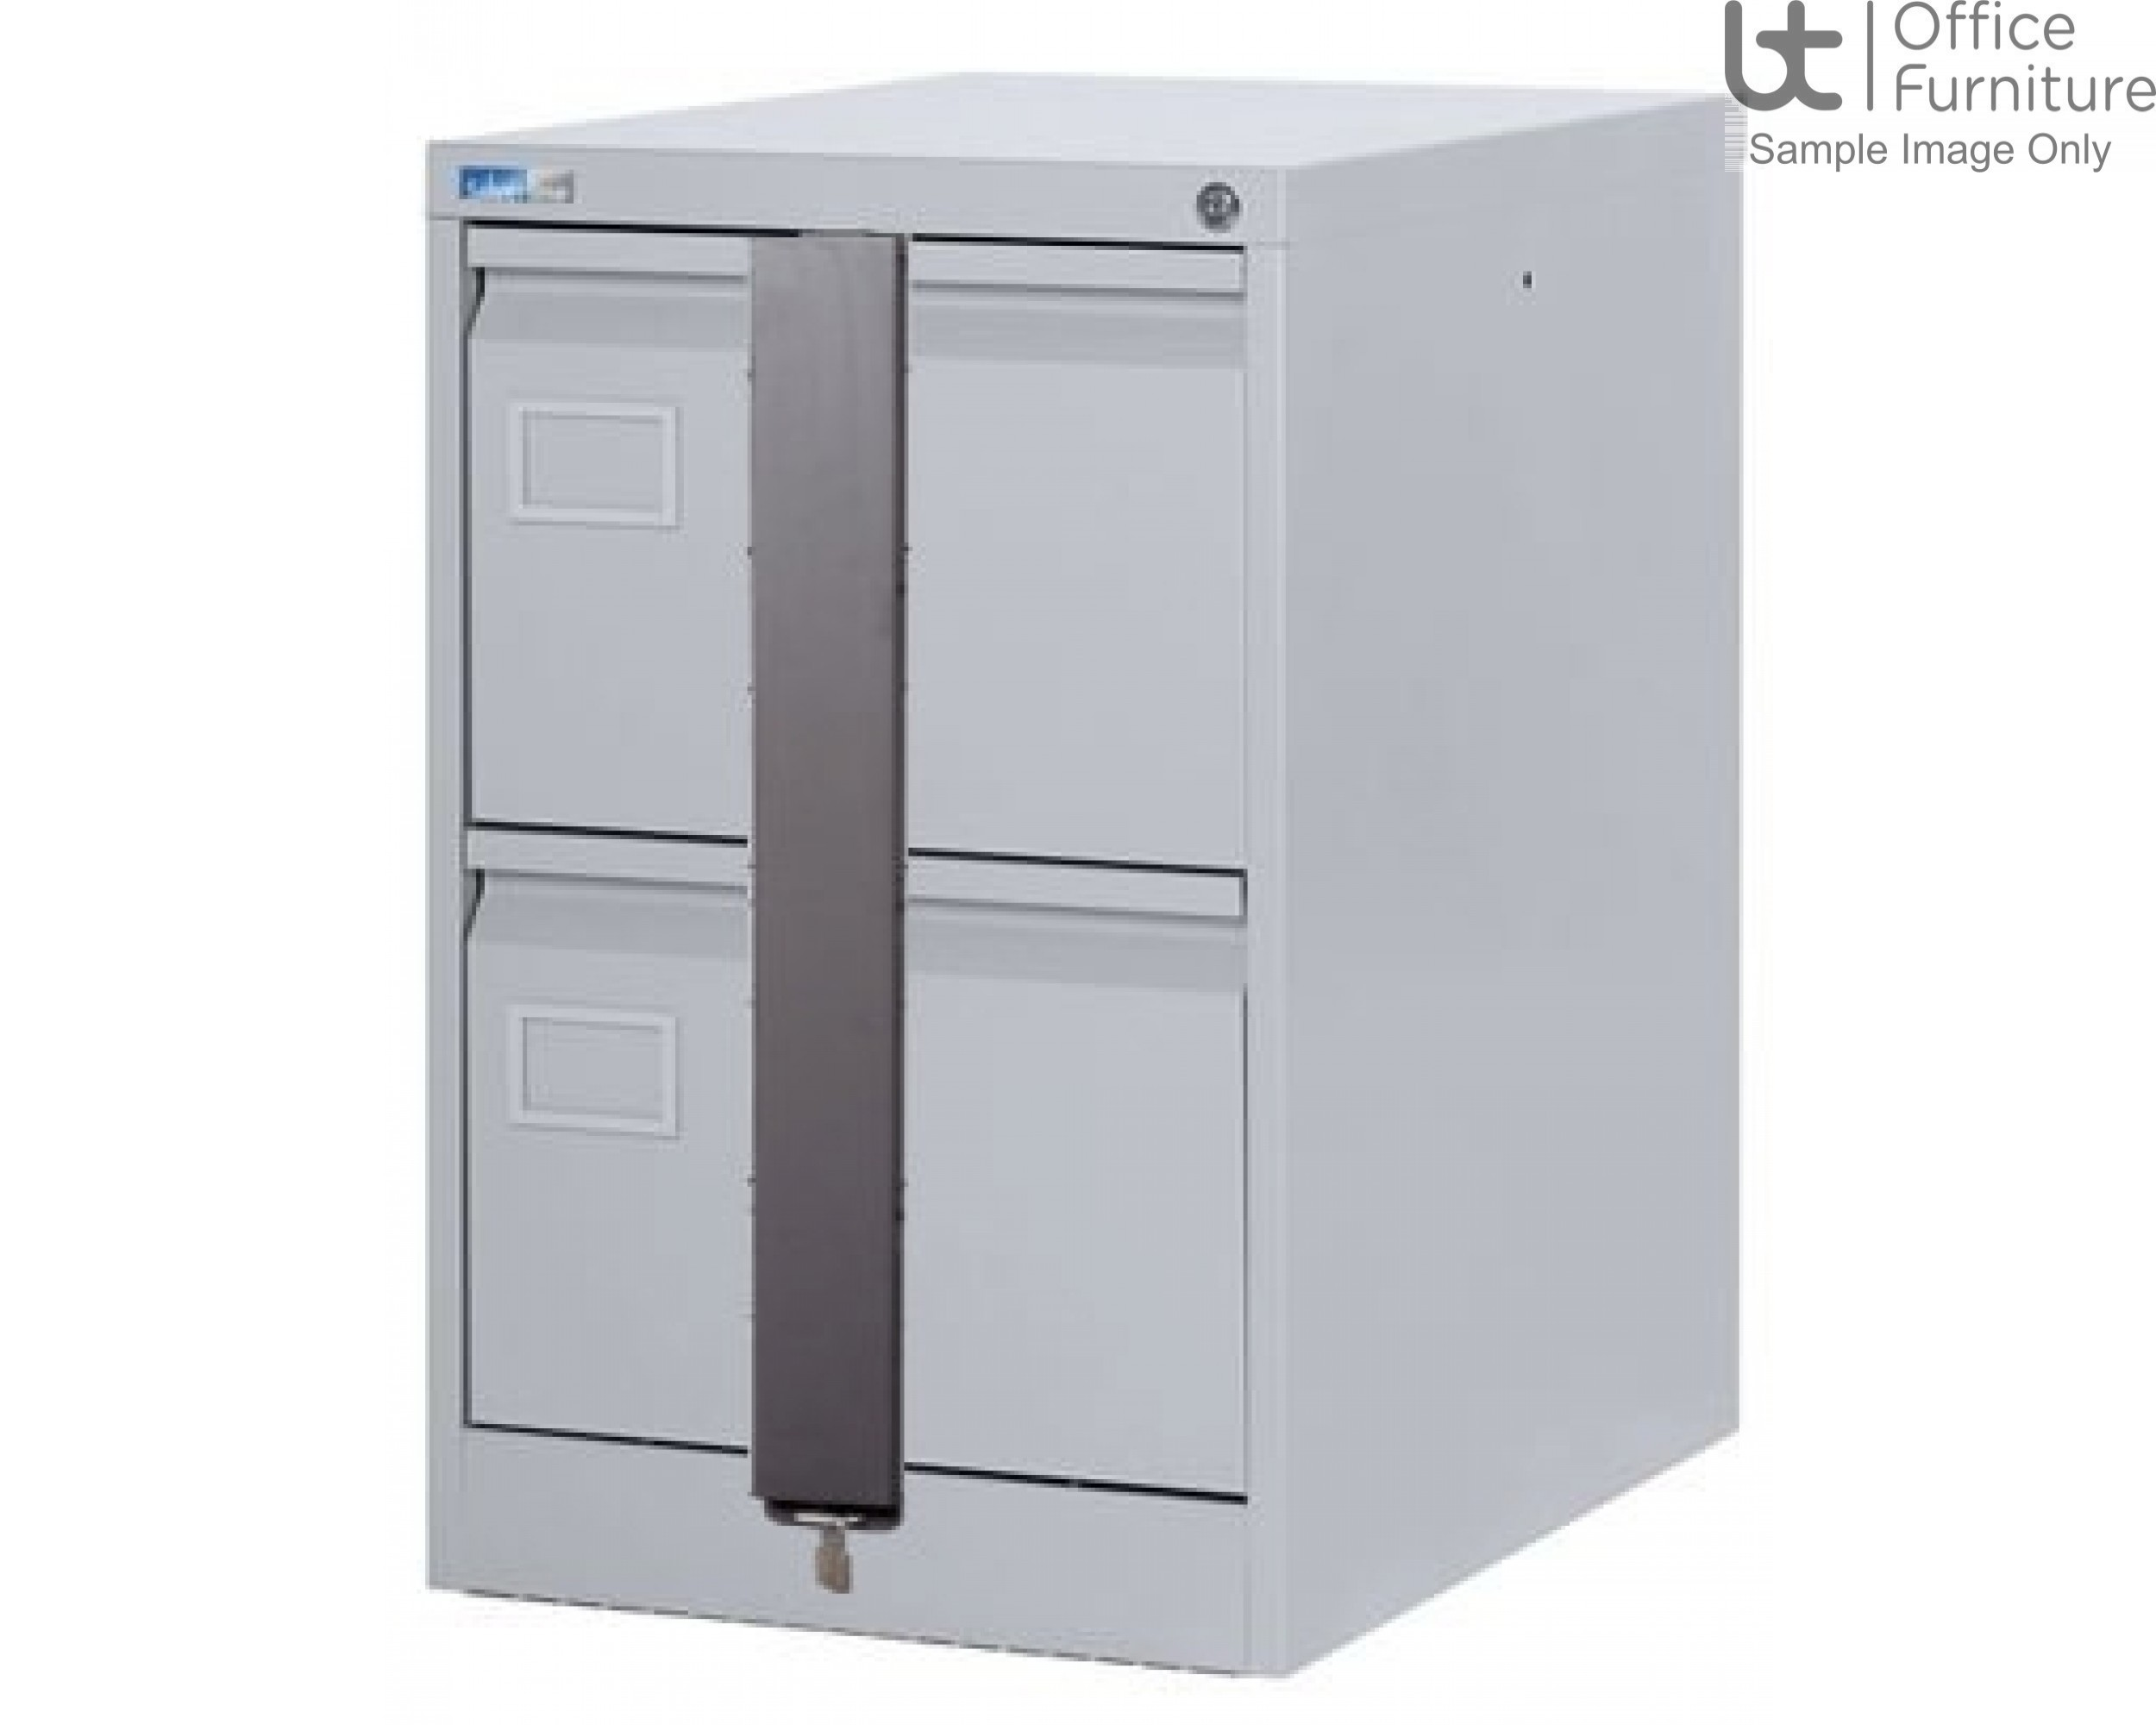 Silverline Executive 2 Drawer Filing Cabinet + Security Bar